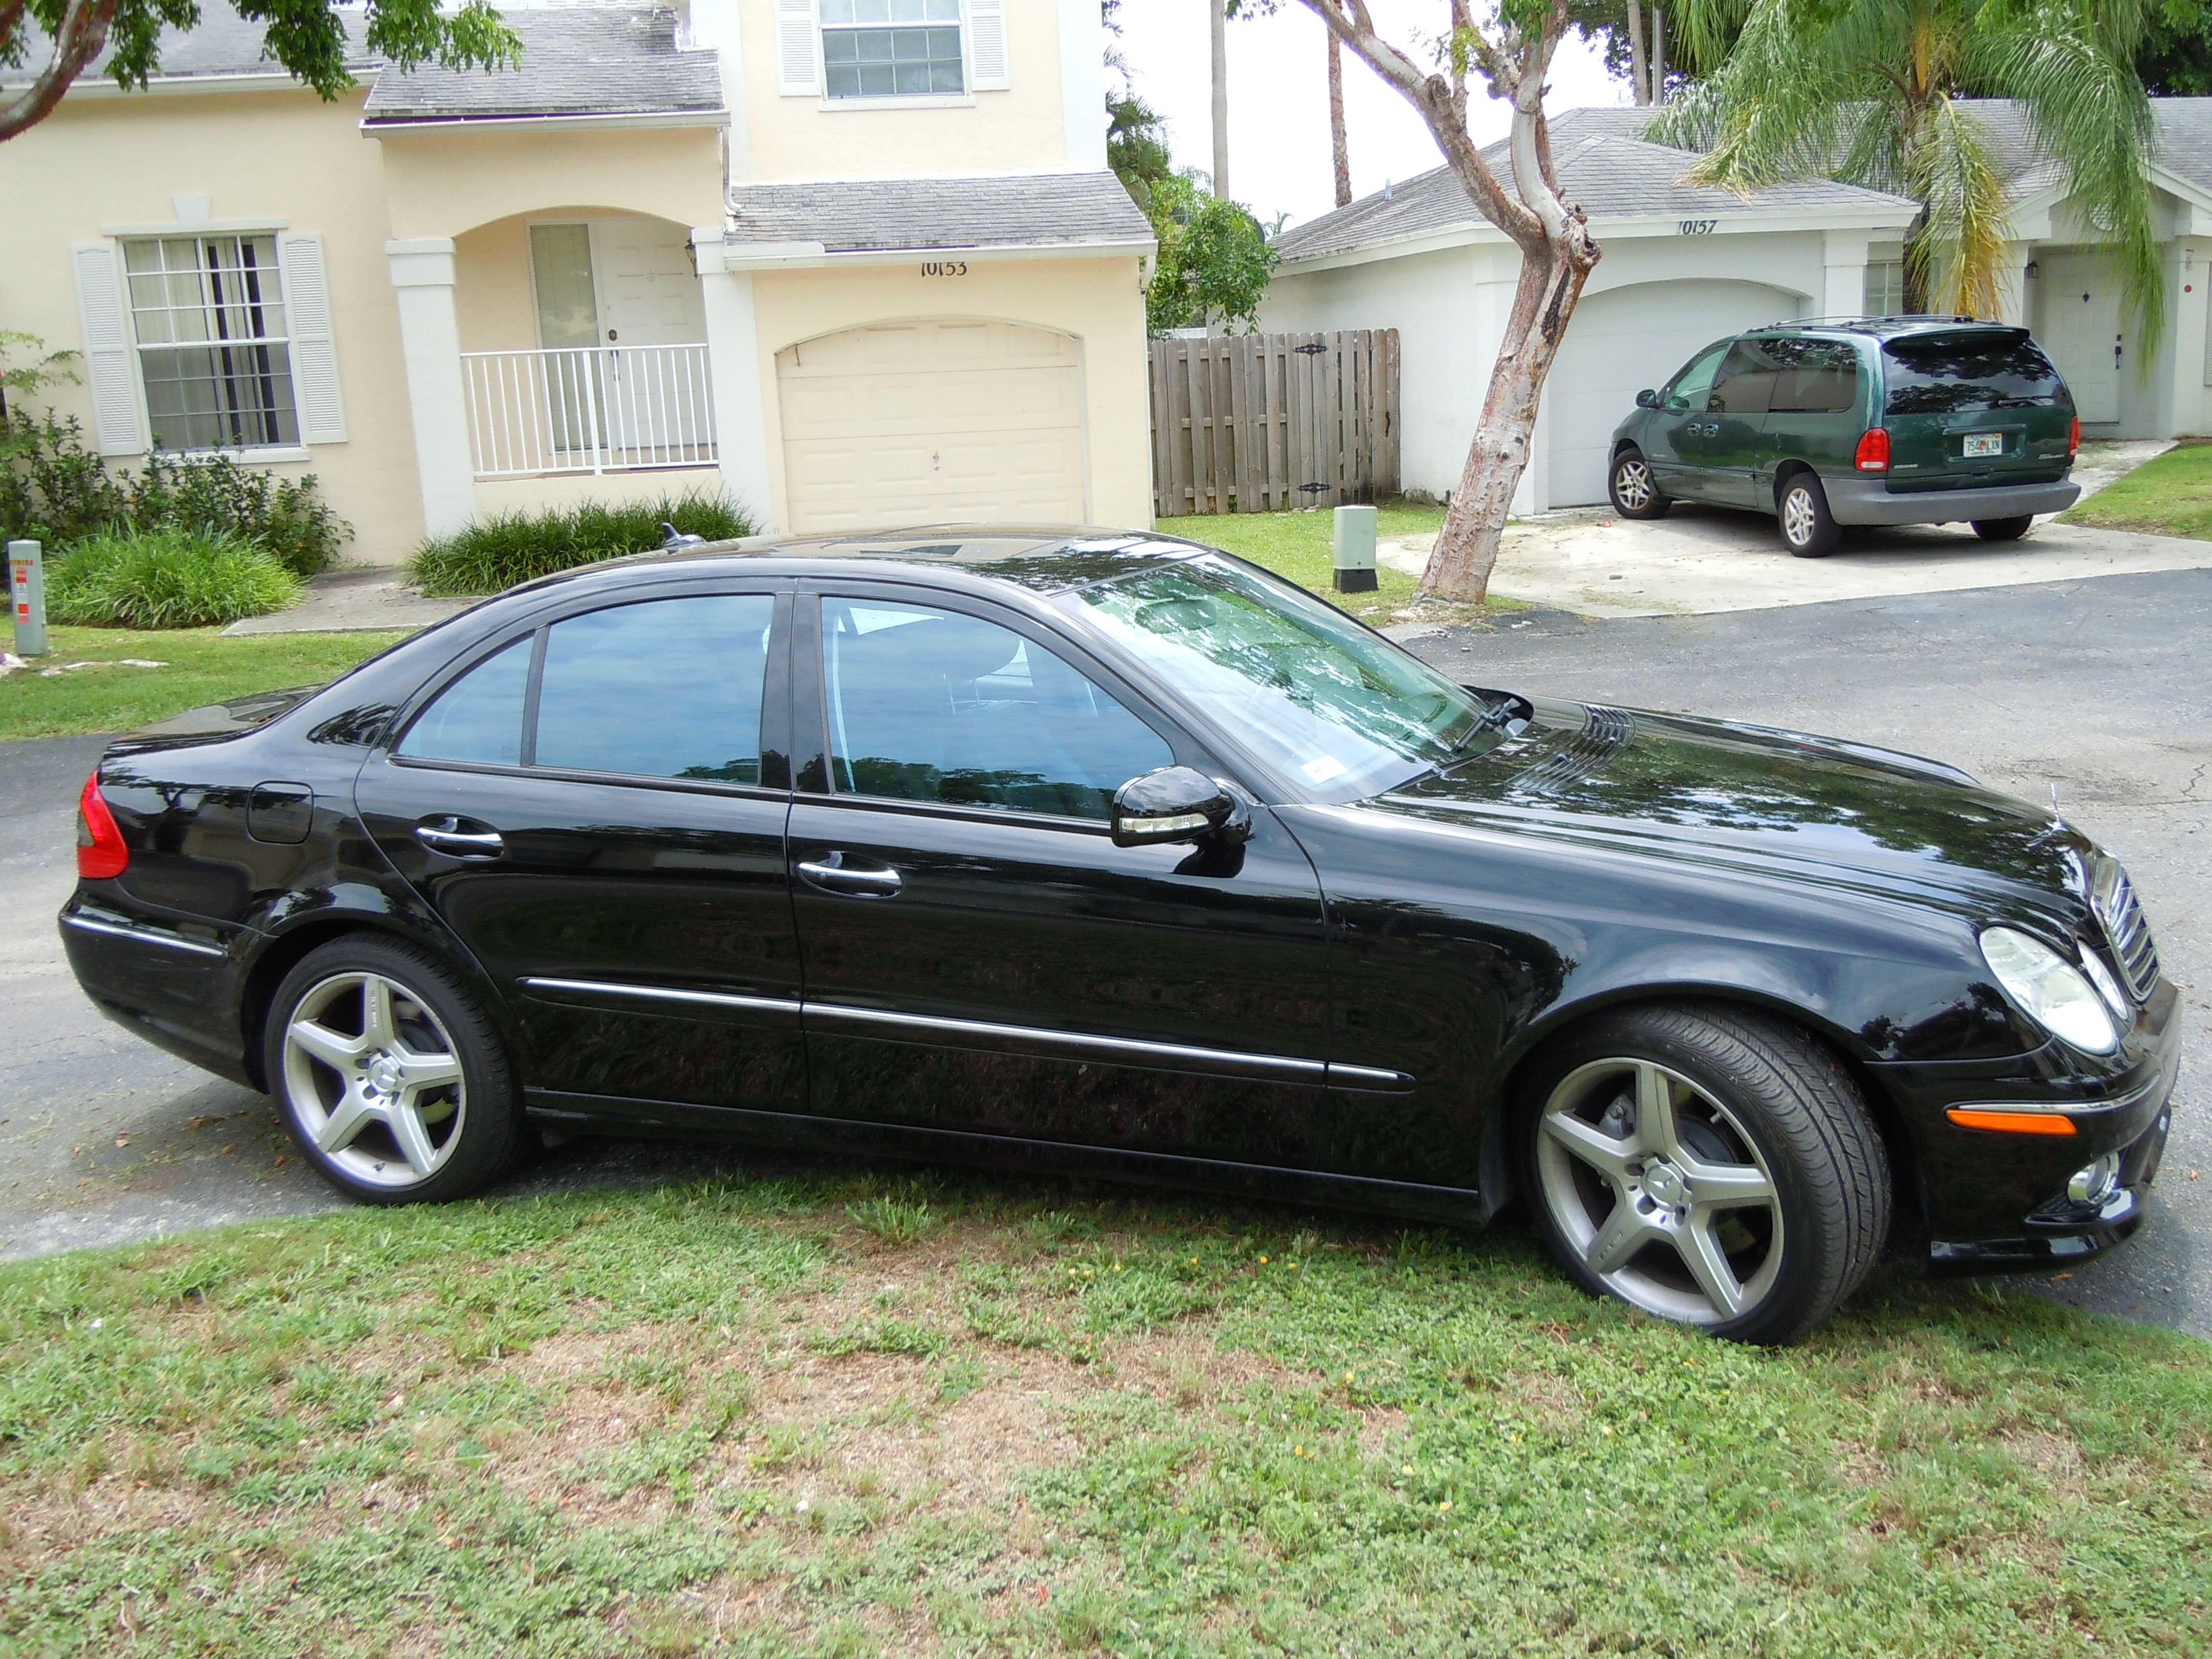 mercedes amg selling extended benz image org my miles forums warranty low mint mbworld